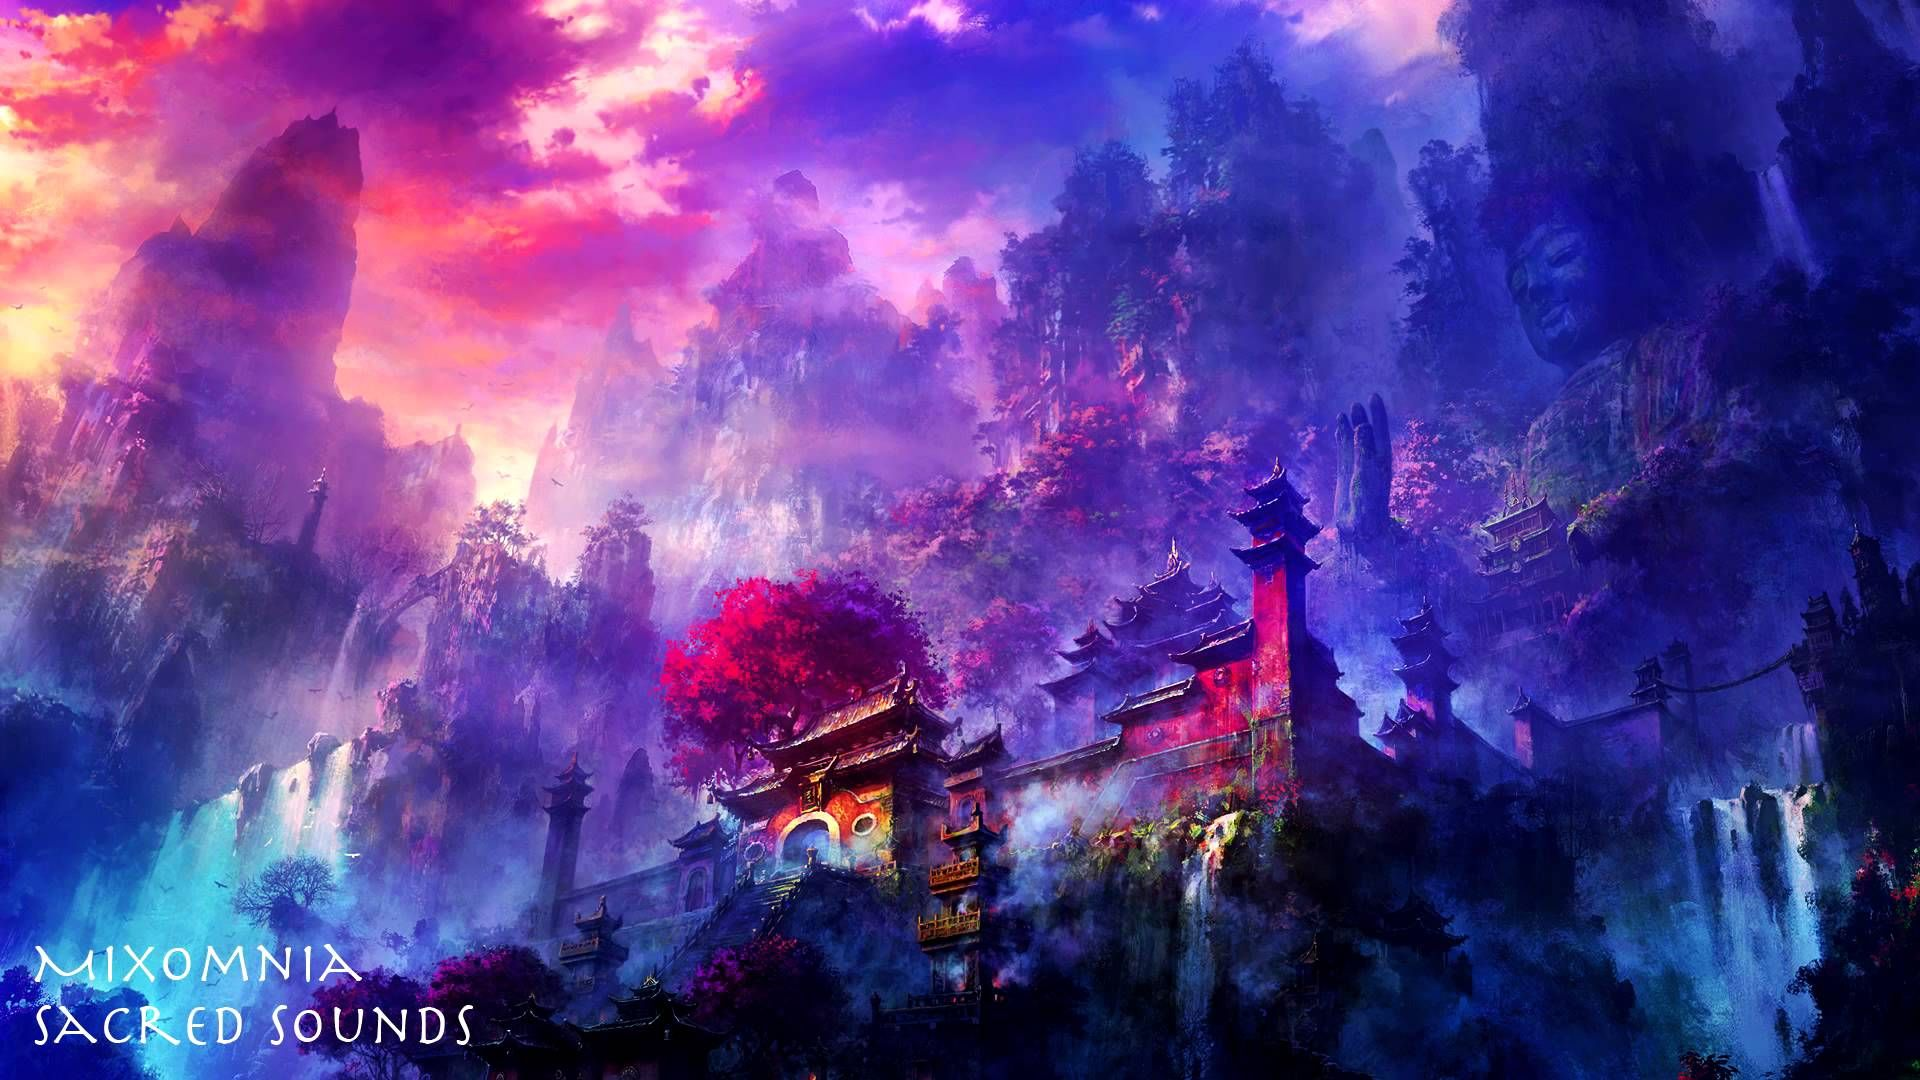 Sacred Sounds Chillstep Mix 2013 Hd Anime Scenery Wallpaper Anime Scenery Anime Wallpaper 1920x1080